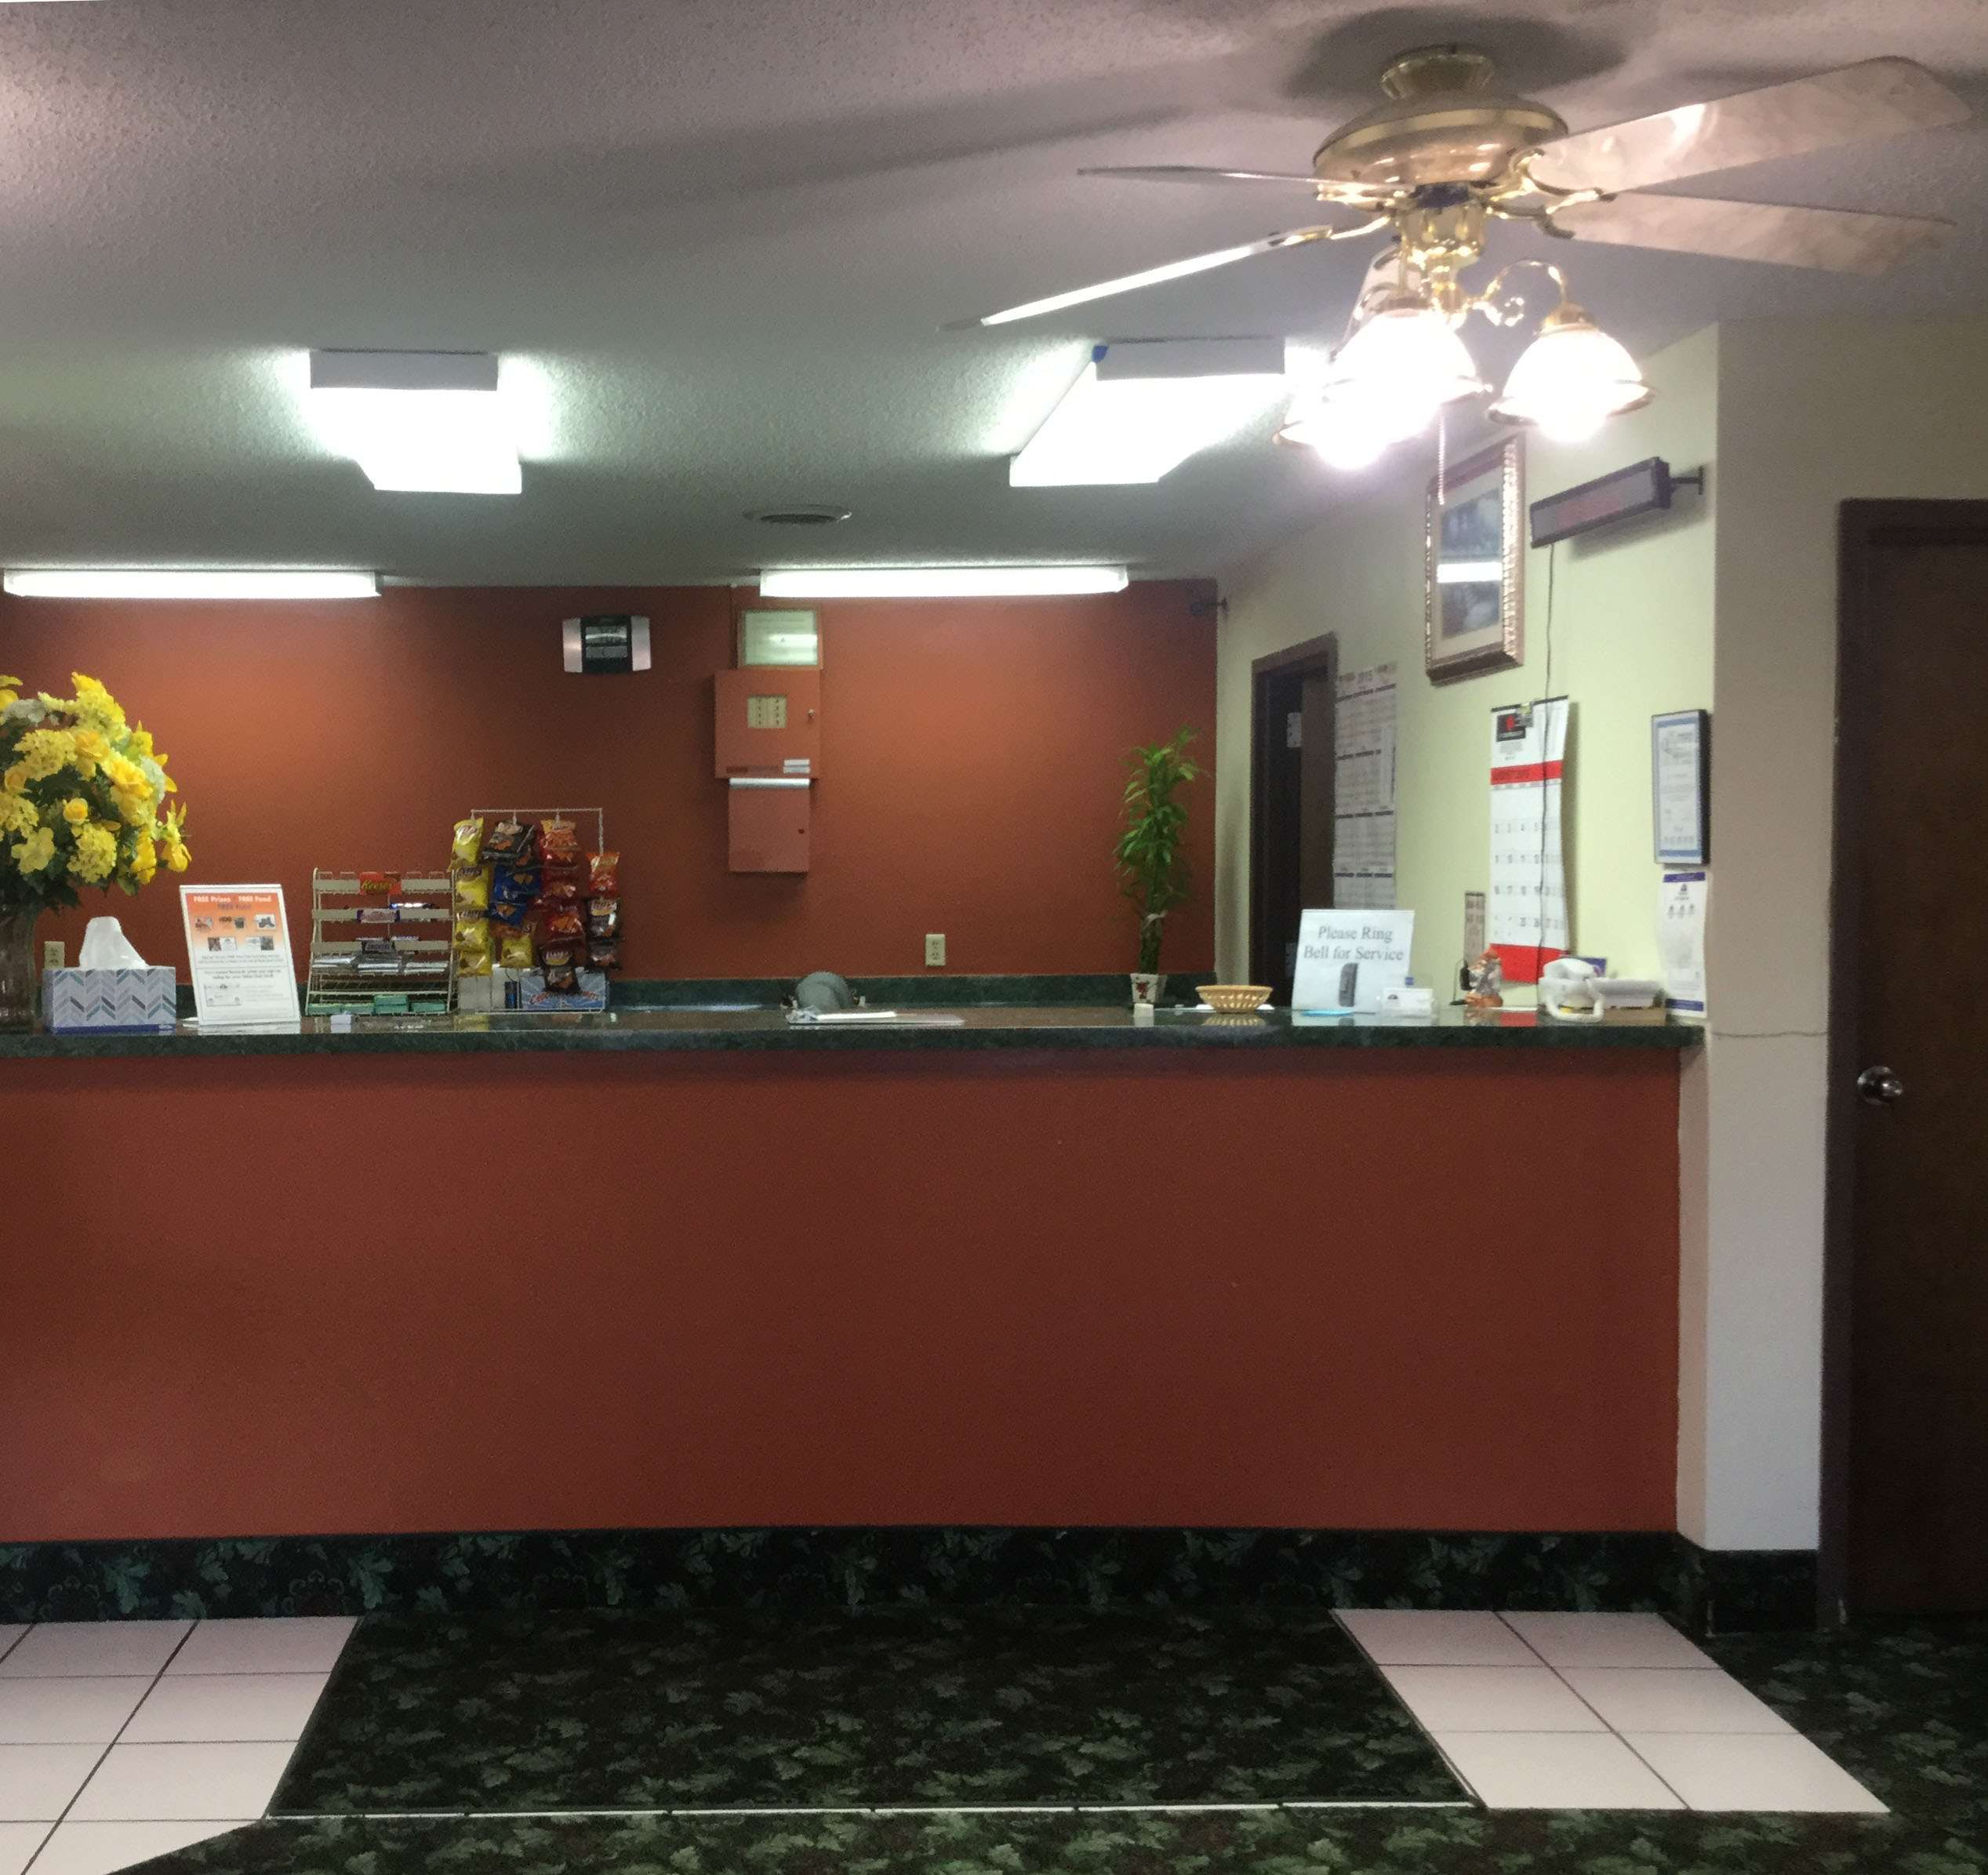 Americas best value inn west frankfort coupons near me in for Americas best coupons